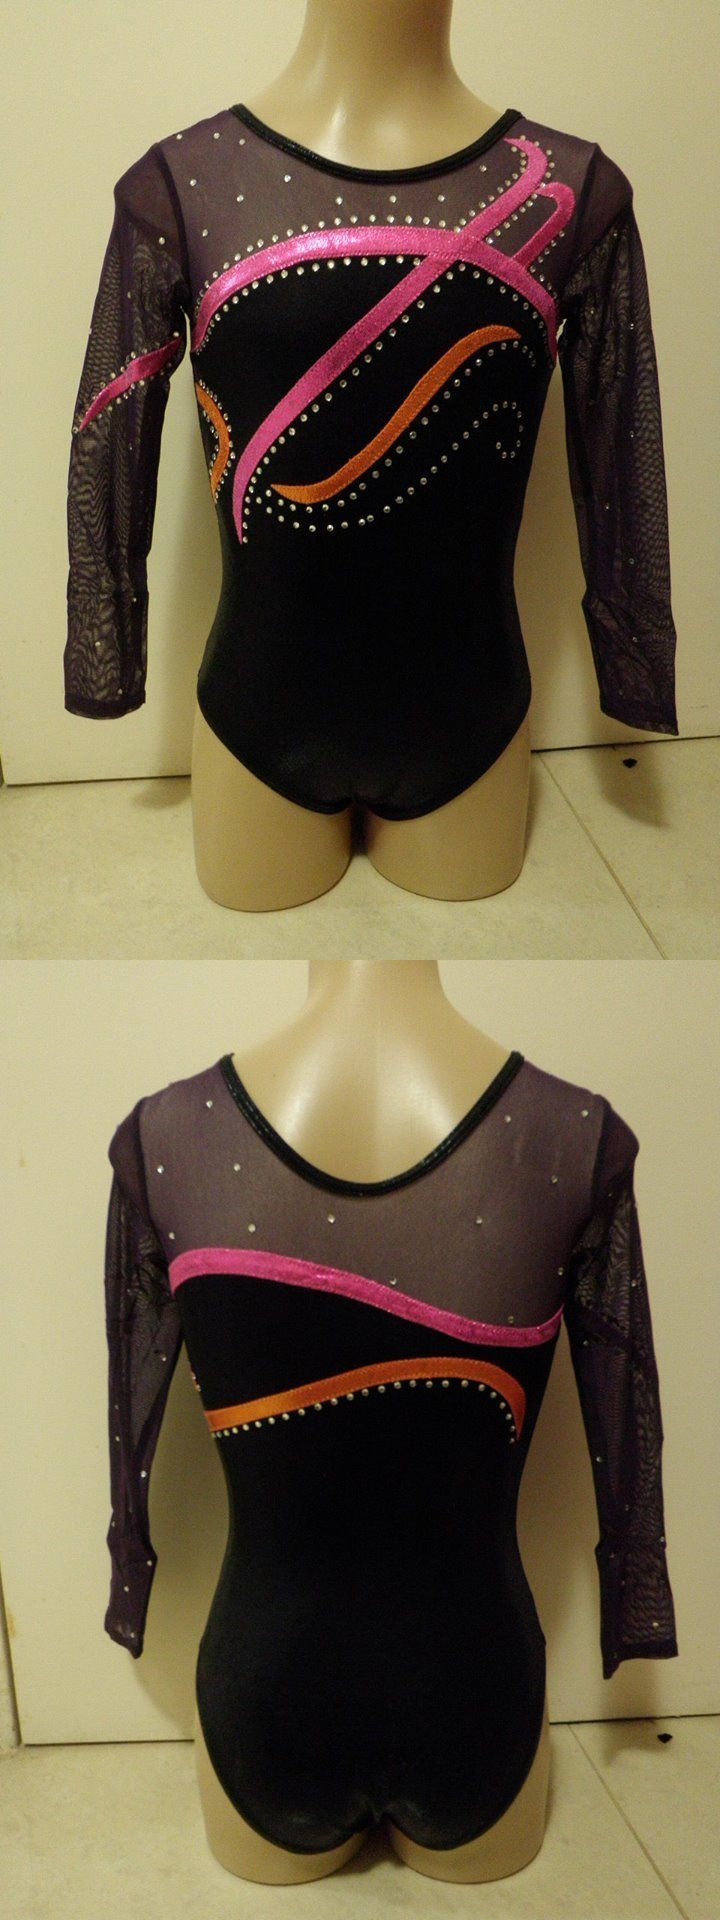 other girls clothes sizes 4 51587 new pink orange and black